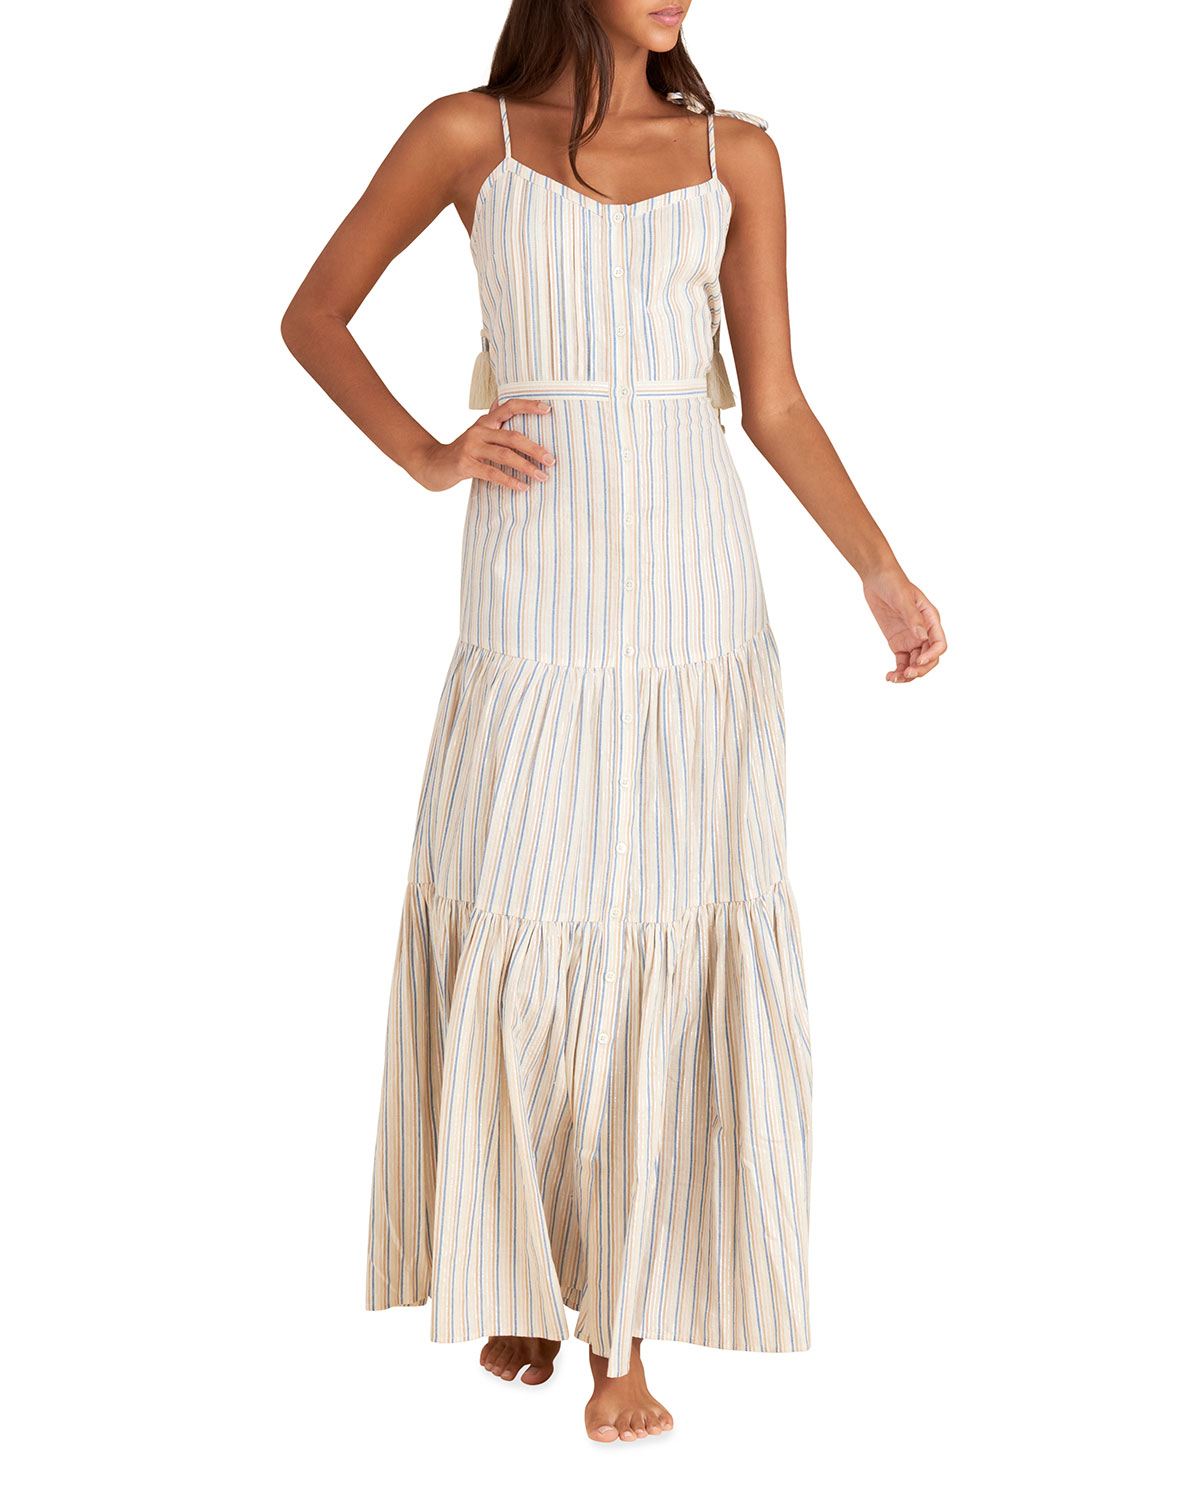 Windansea Striped Tassel-Tie Dress